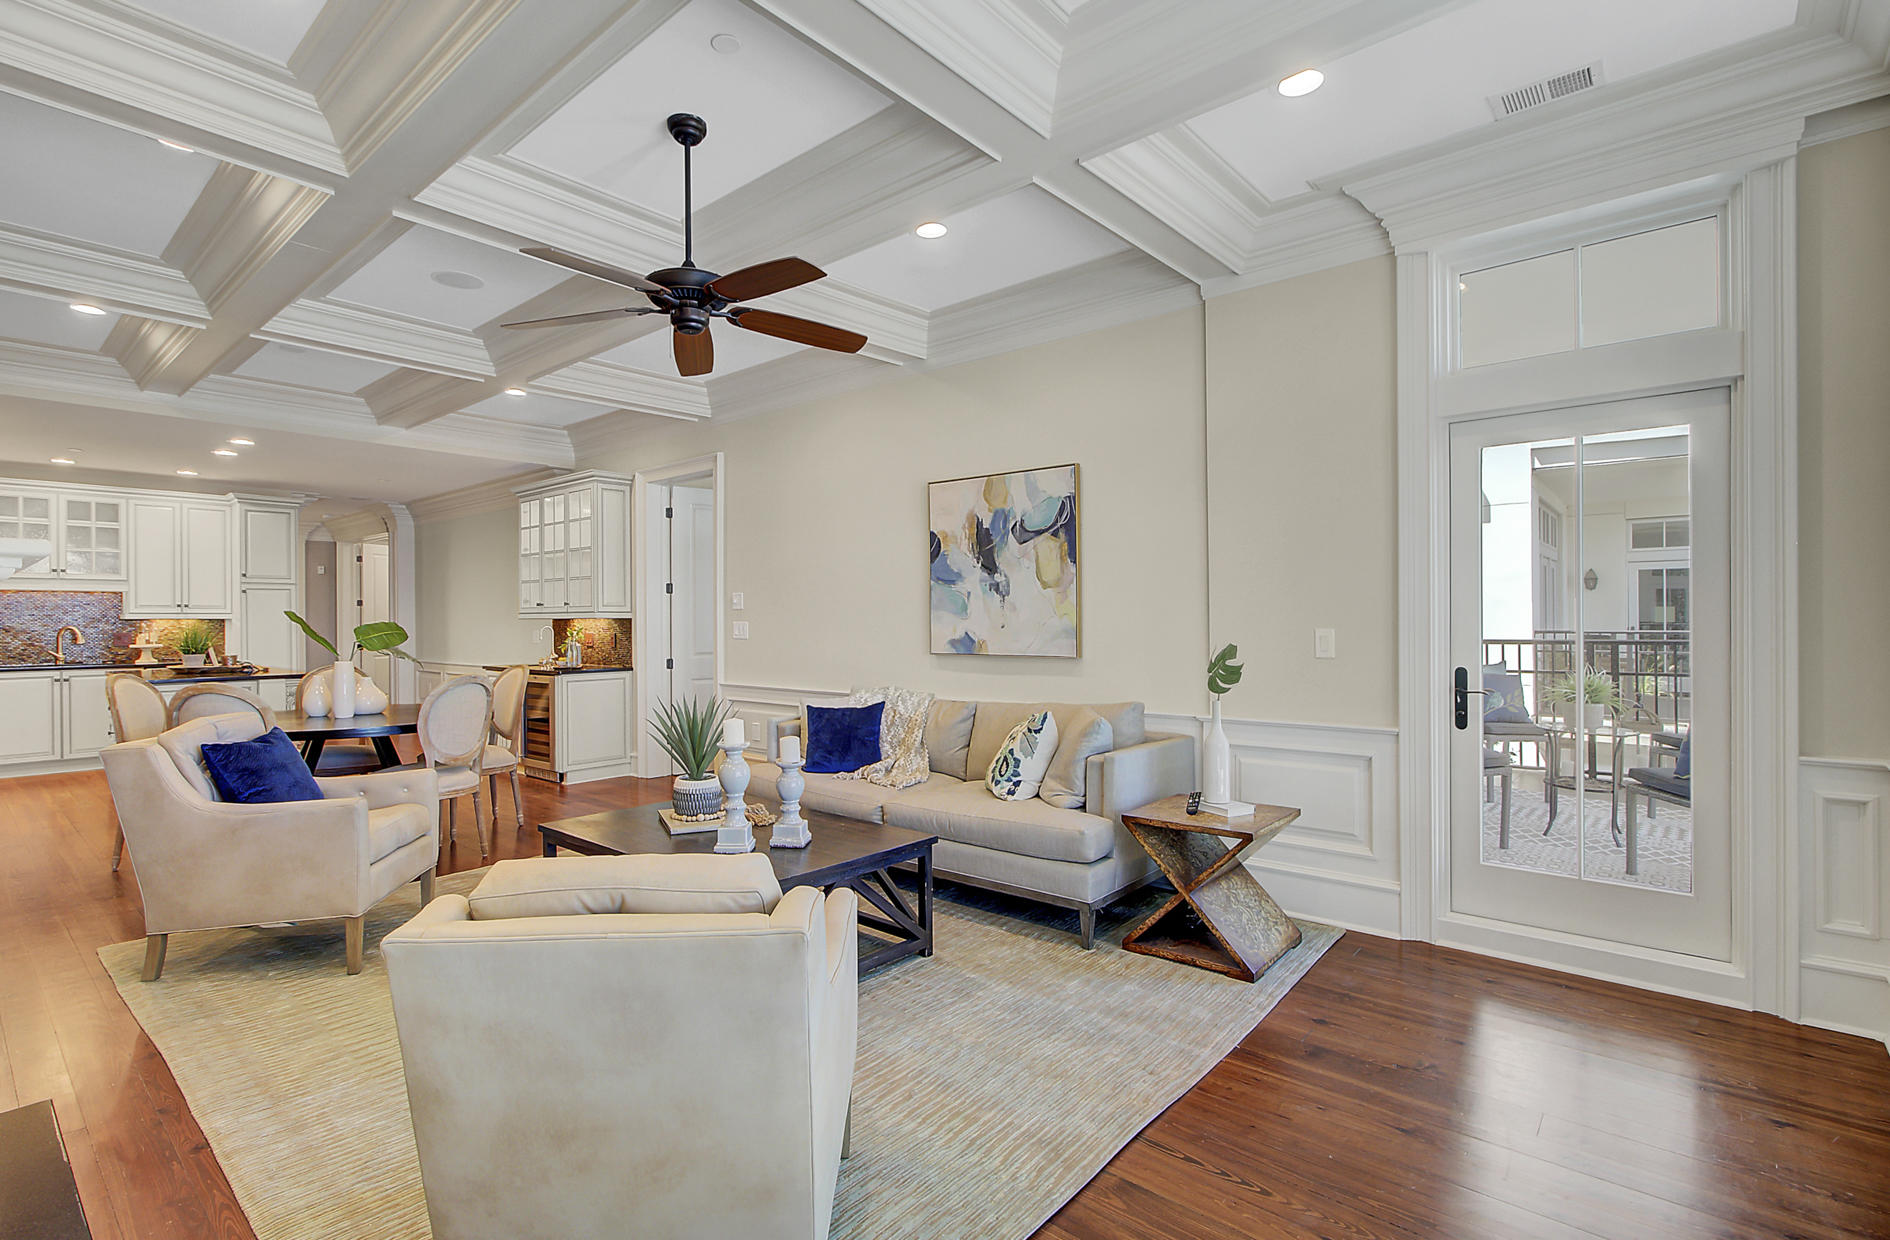 French Quarter Homes For Sale - 175 Concord, Charleston, SC - 19